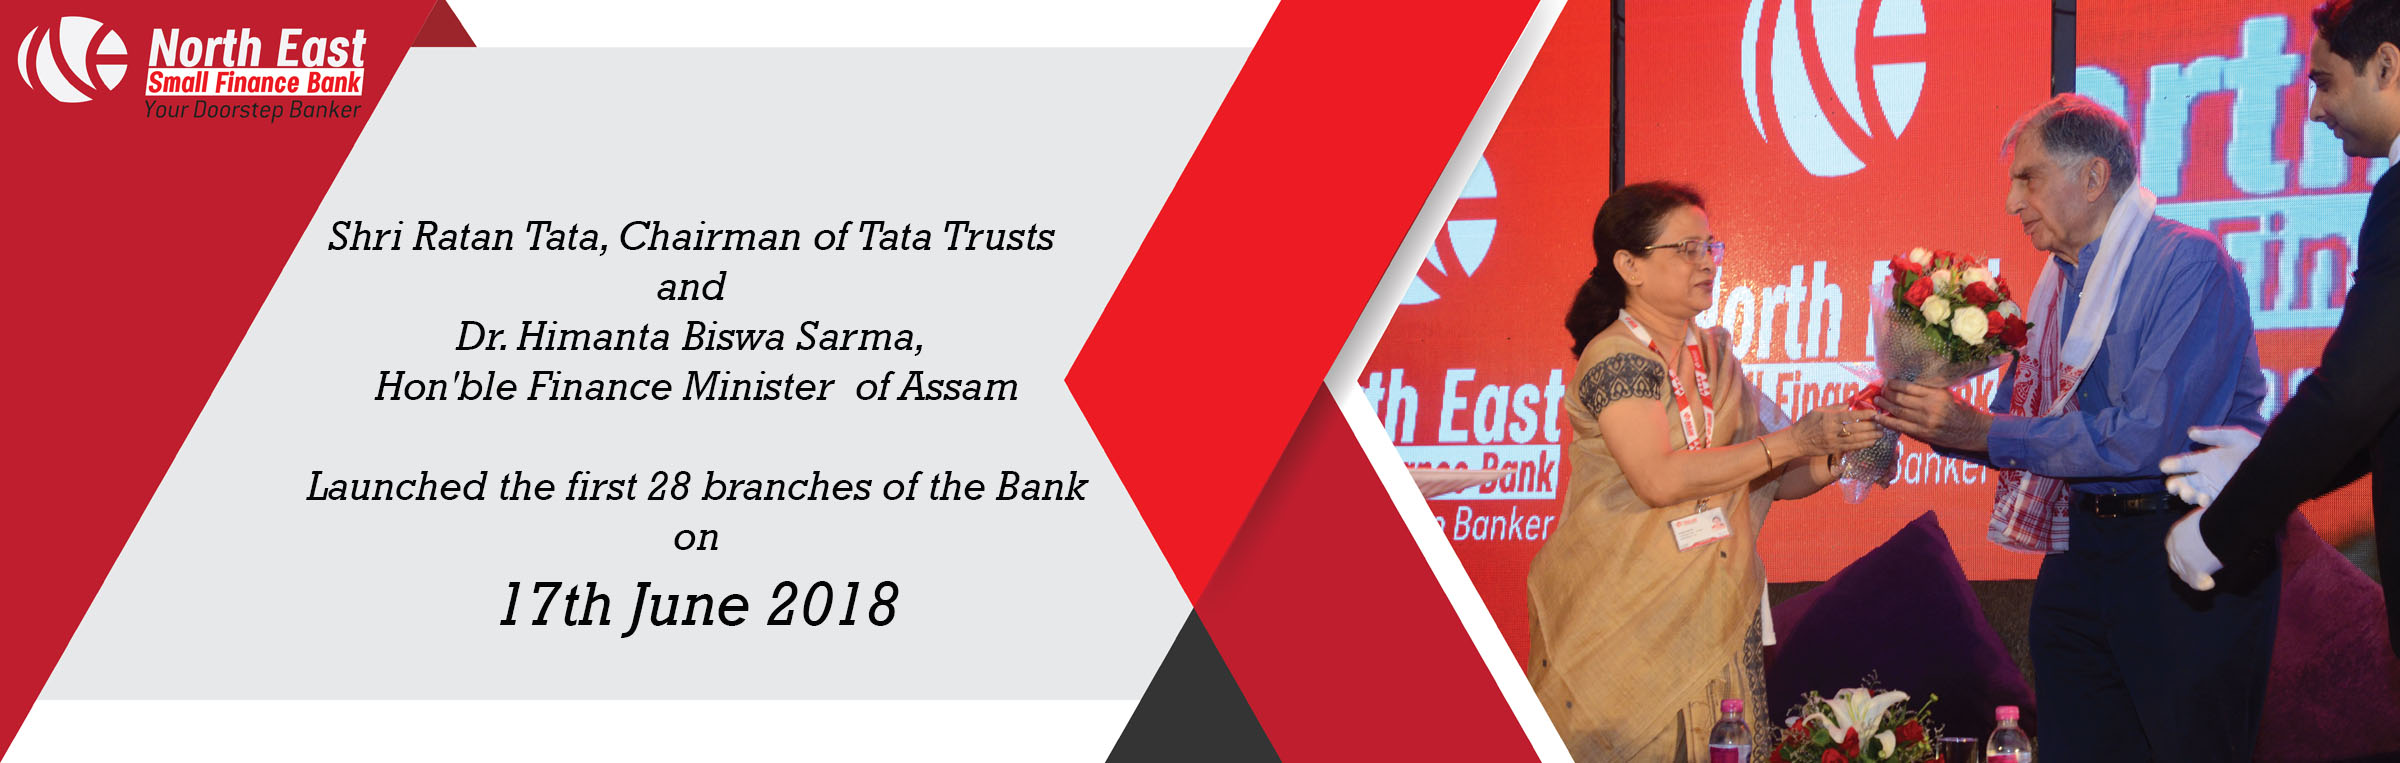 Welcome to North East Small Finance Bank